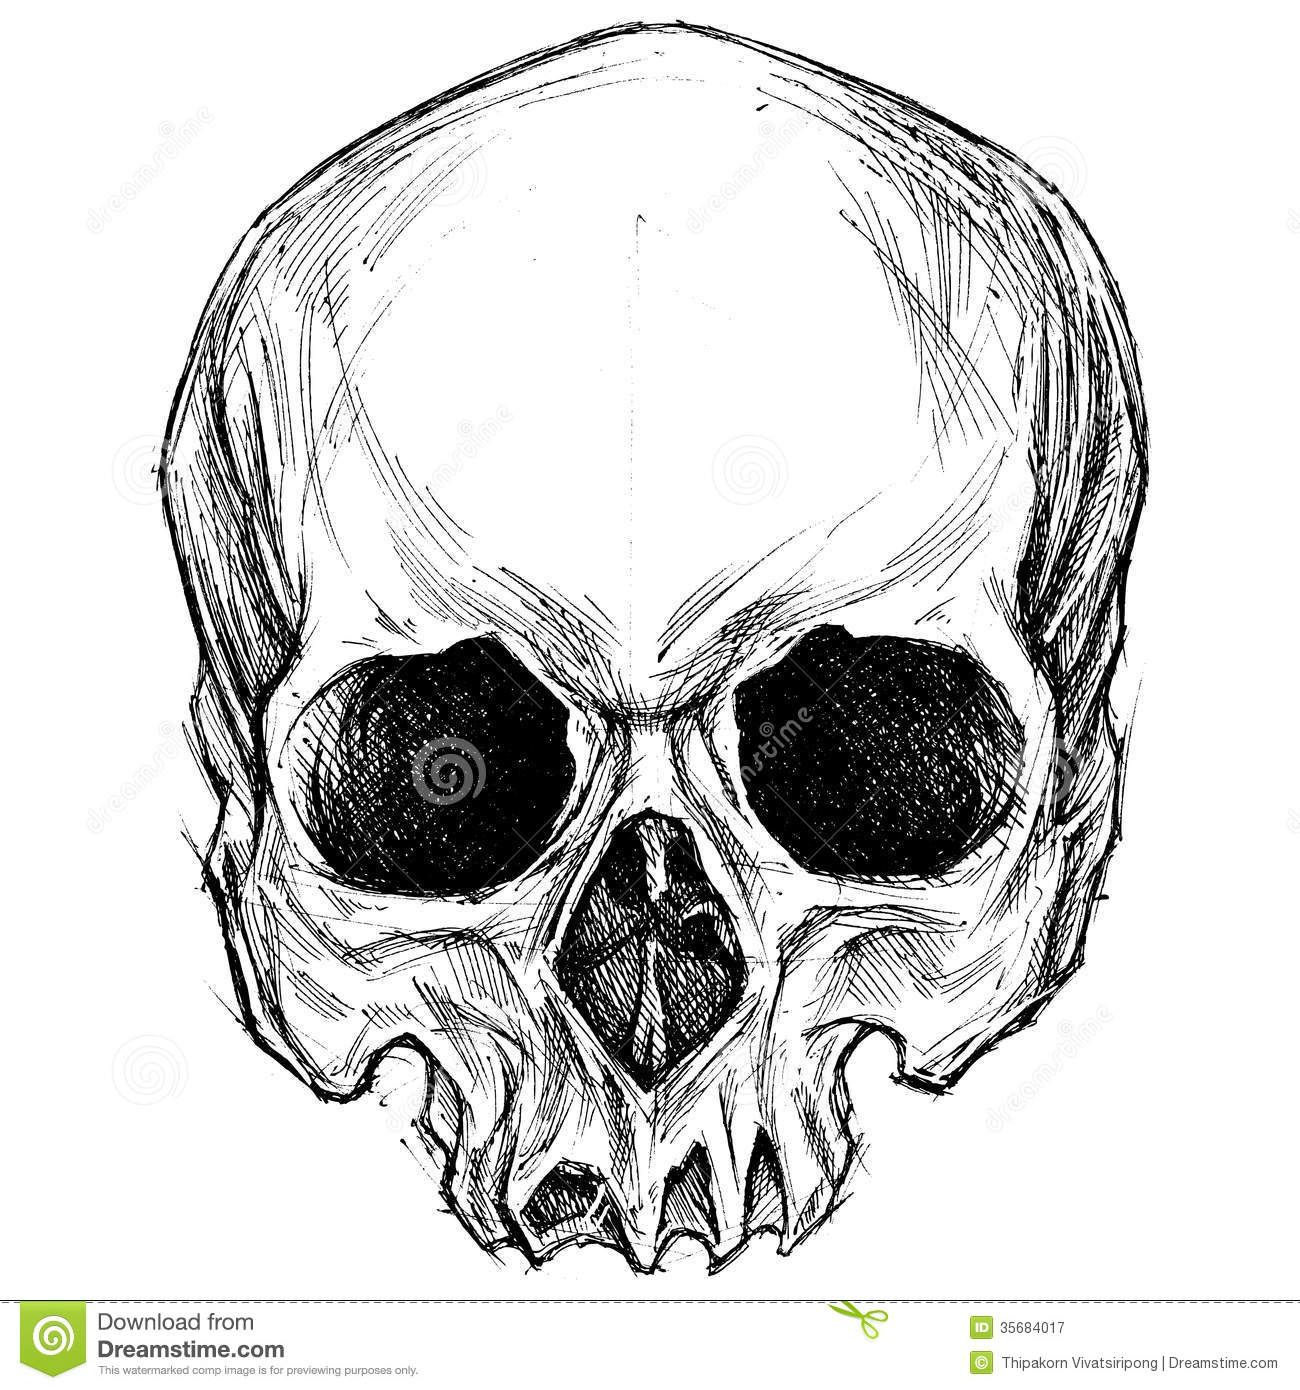 hipster drawing ideas tumblr Google Search Skulls